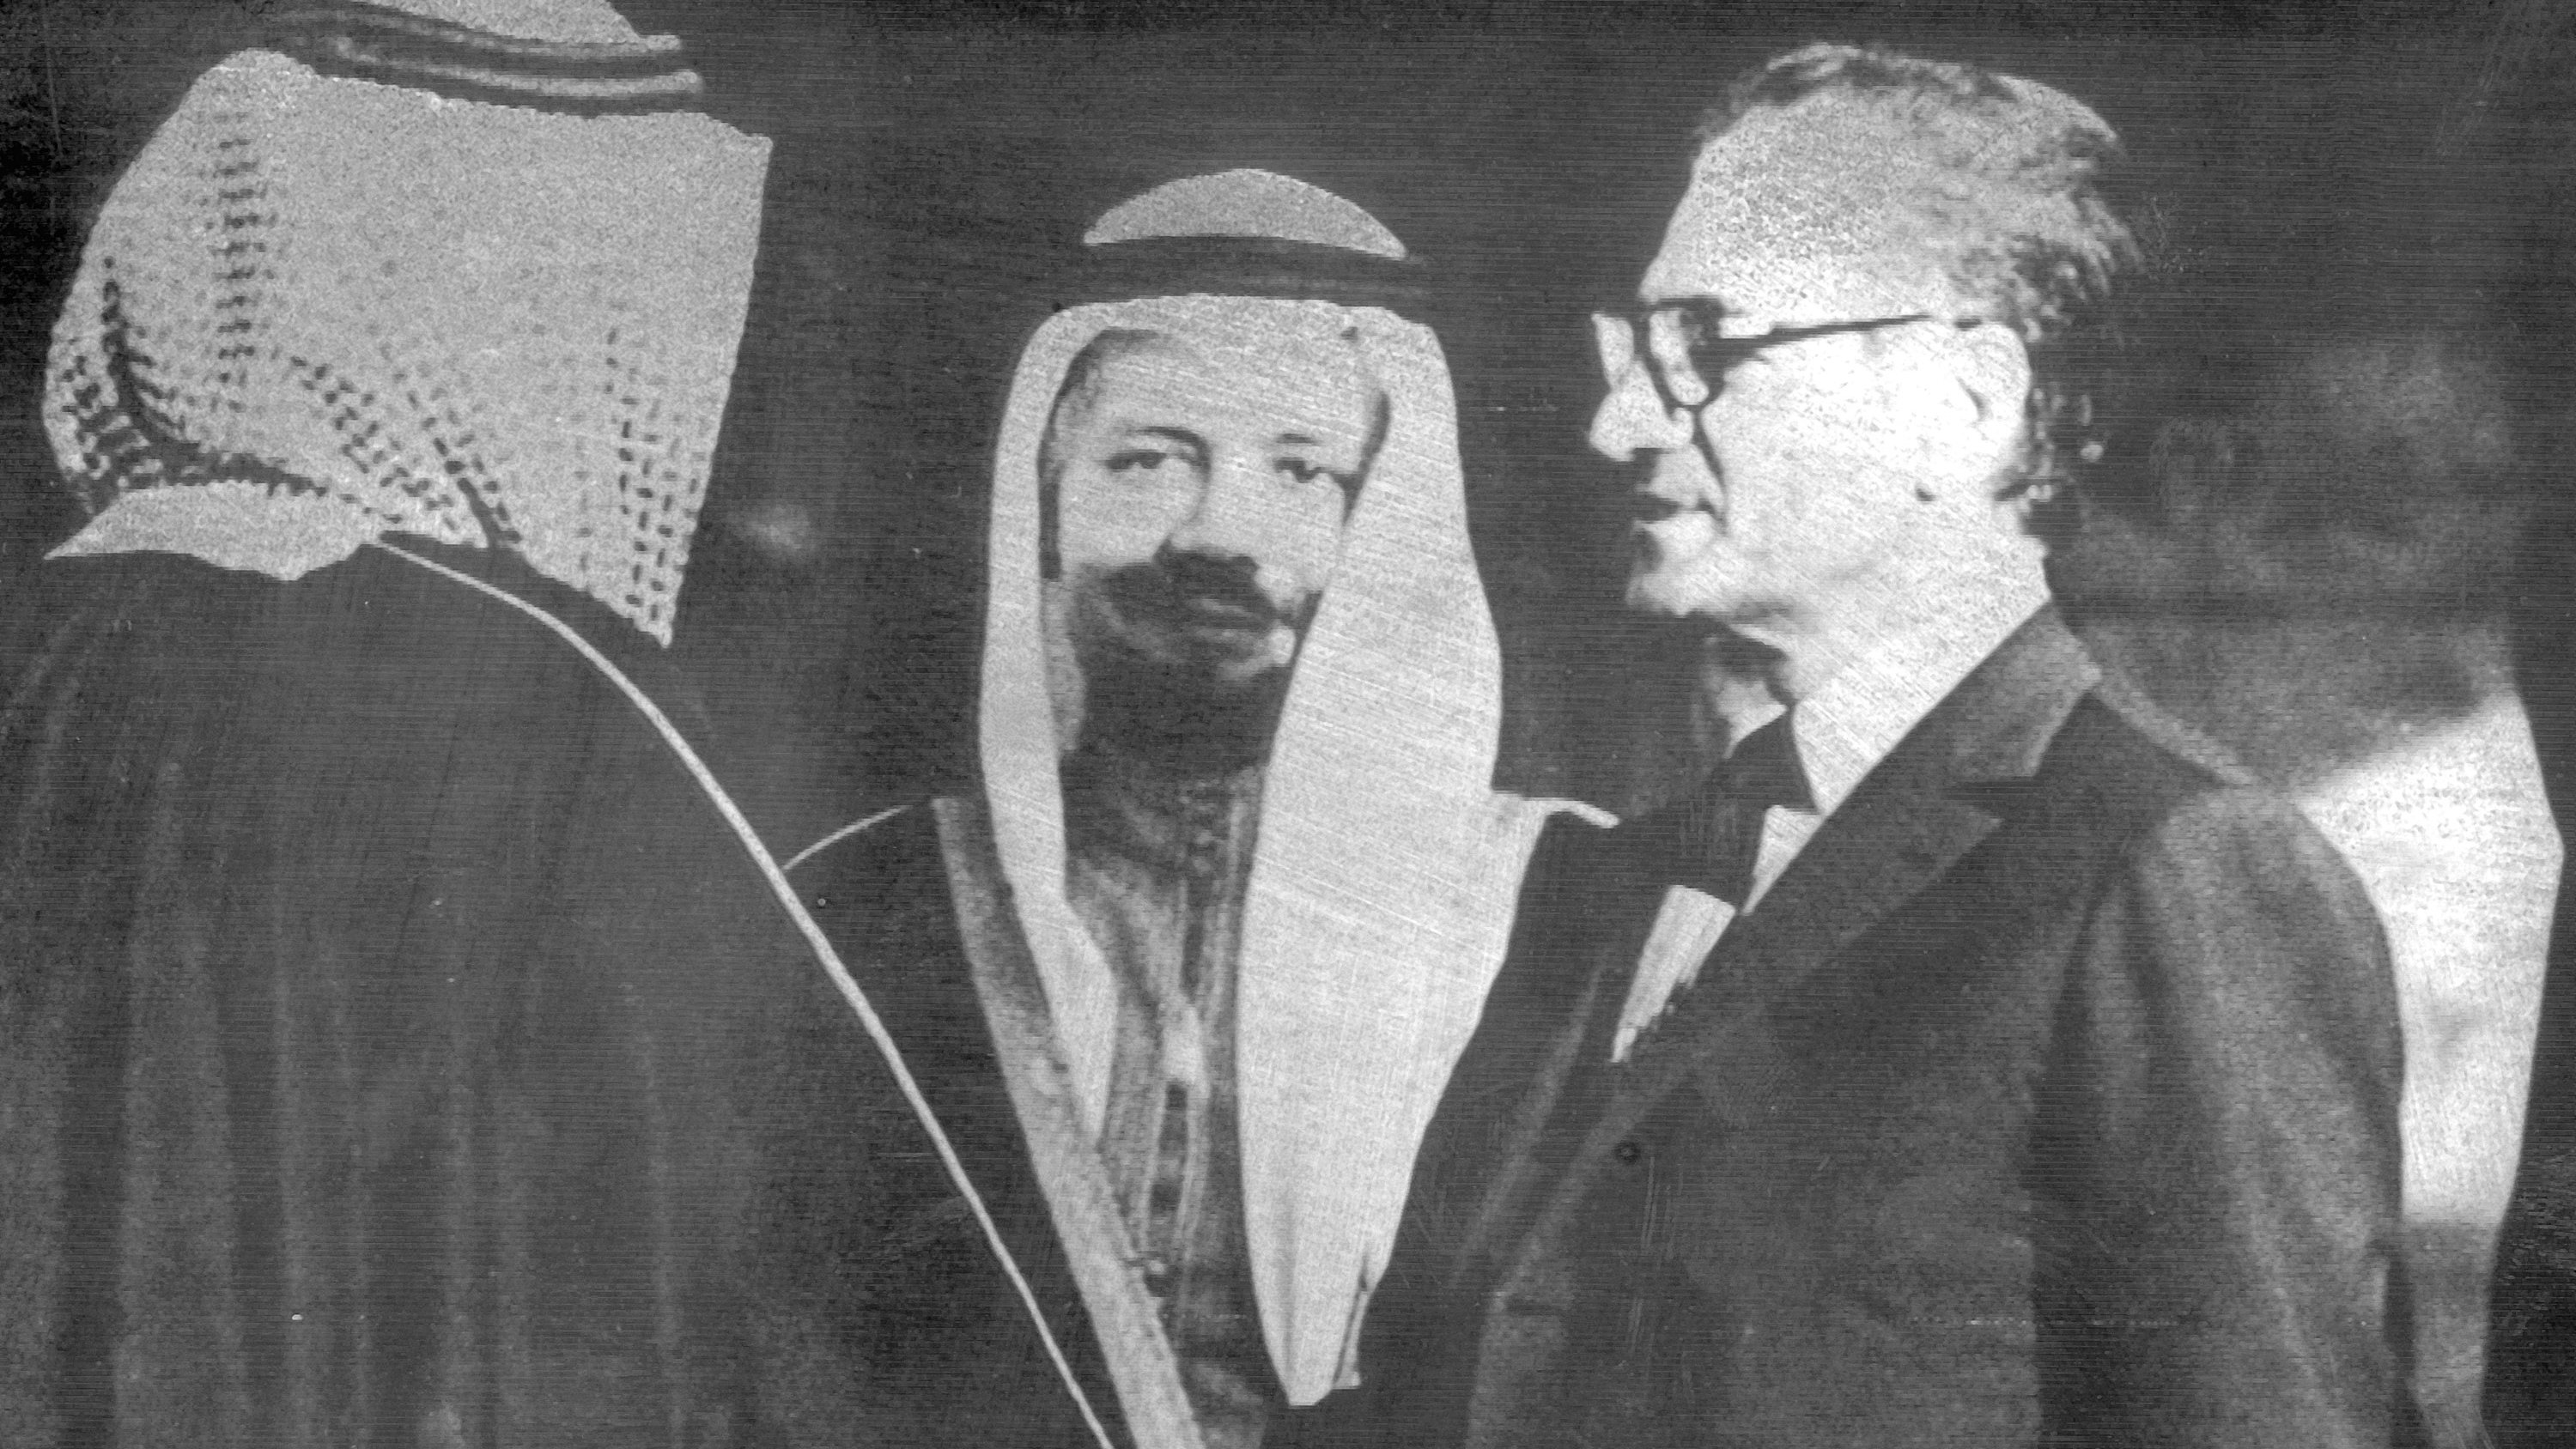 Shah of Iran meets with Prince Fahd, Vice Premier of Saudi Arabia and brother of King Faisal. Center Sheikh Zaki Yamani, Saudi Arabian Oil Minister. Meeting took place on March 5, 1975.